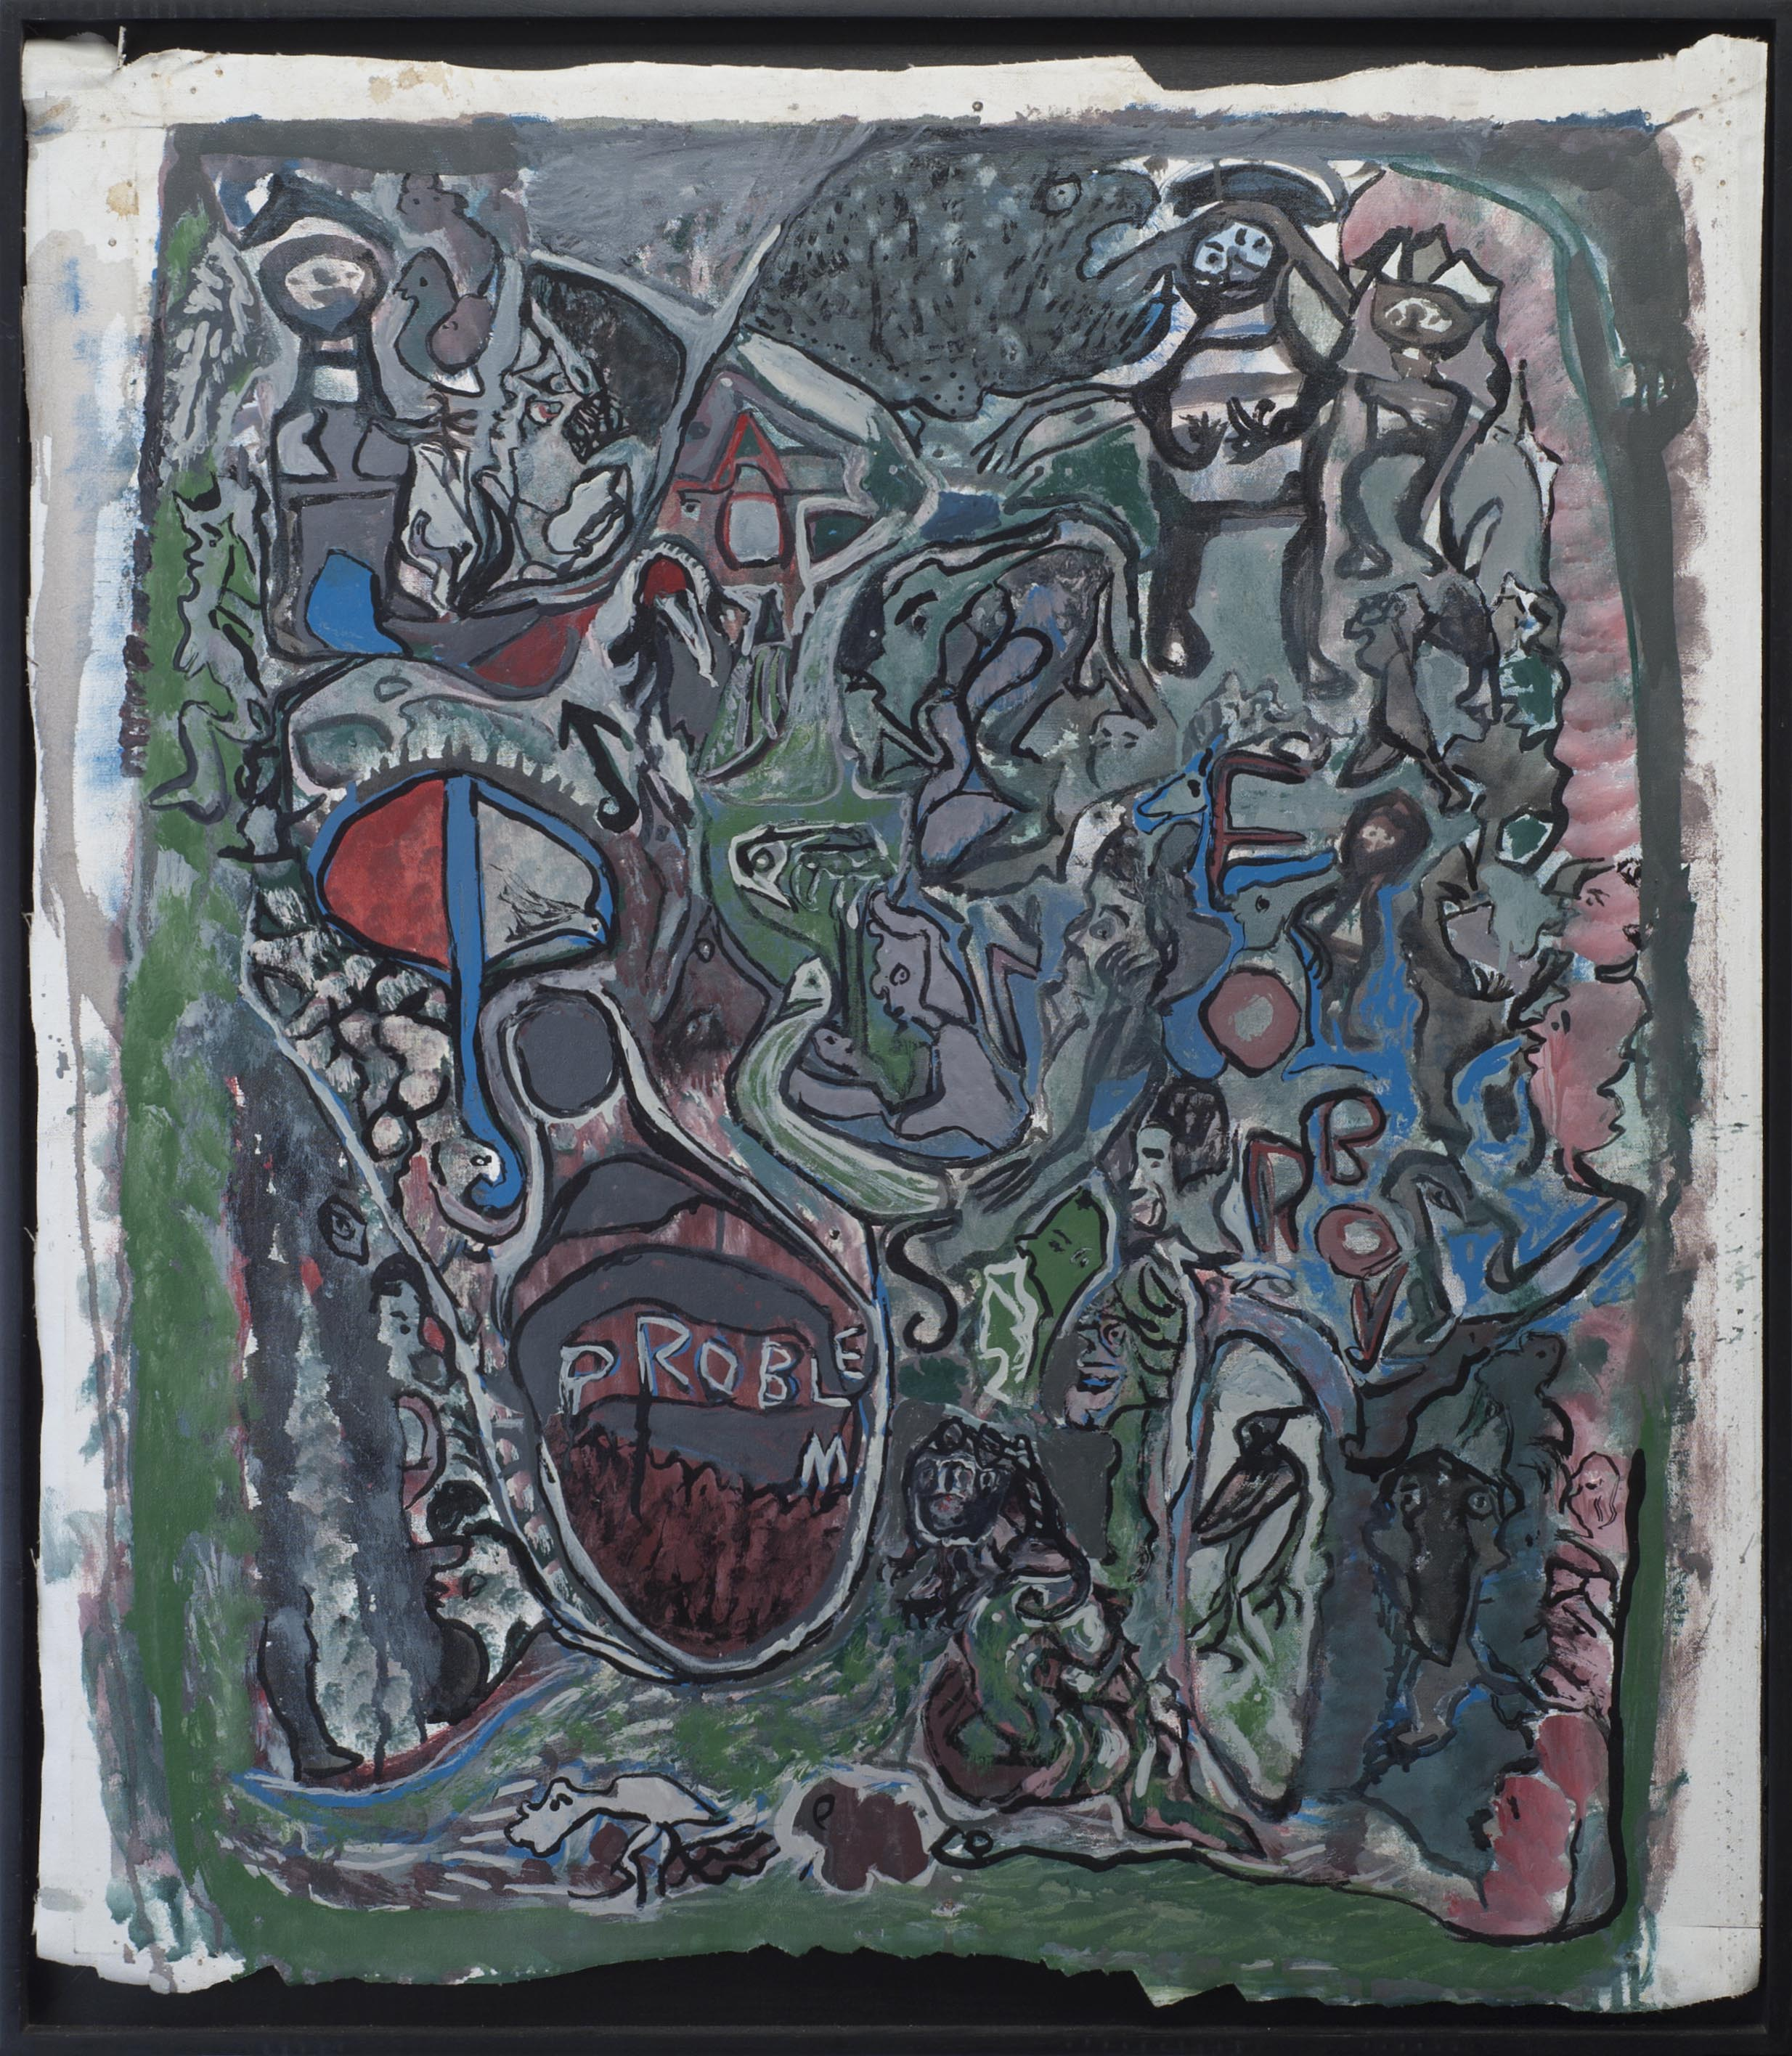 Leonard Daley Problem, 1993 Oil on canvas 32 x 29 inches 81.3 x 73.7 cm LE 32